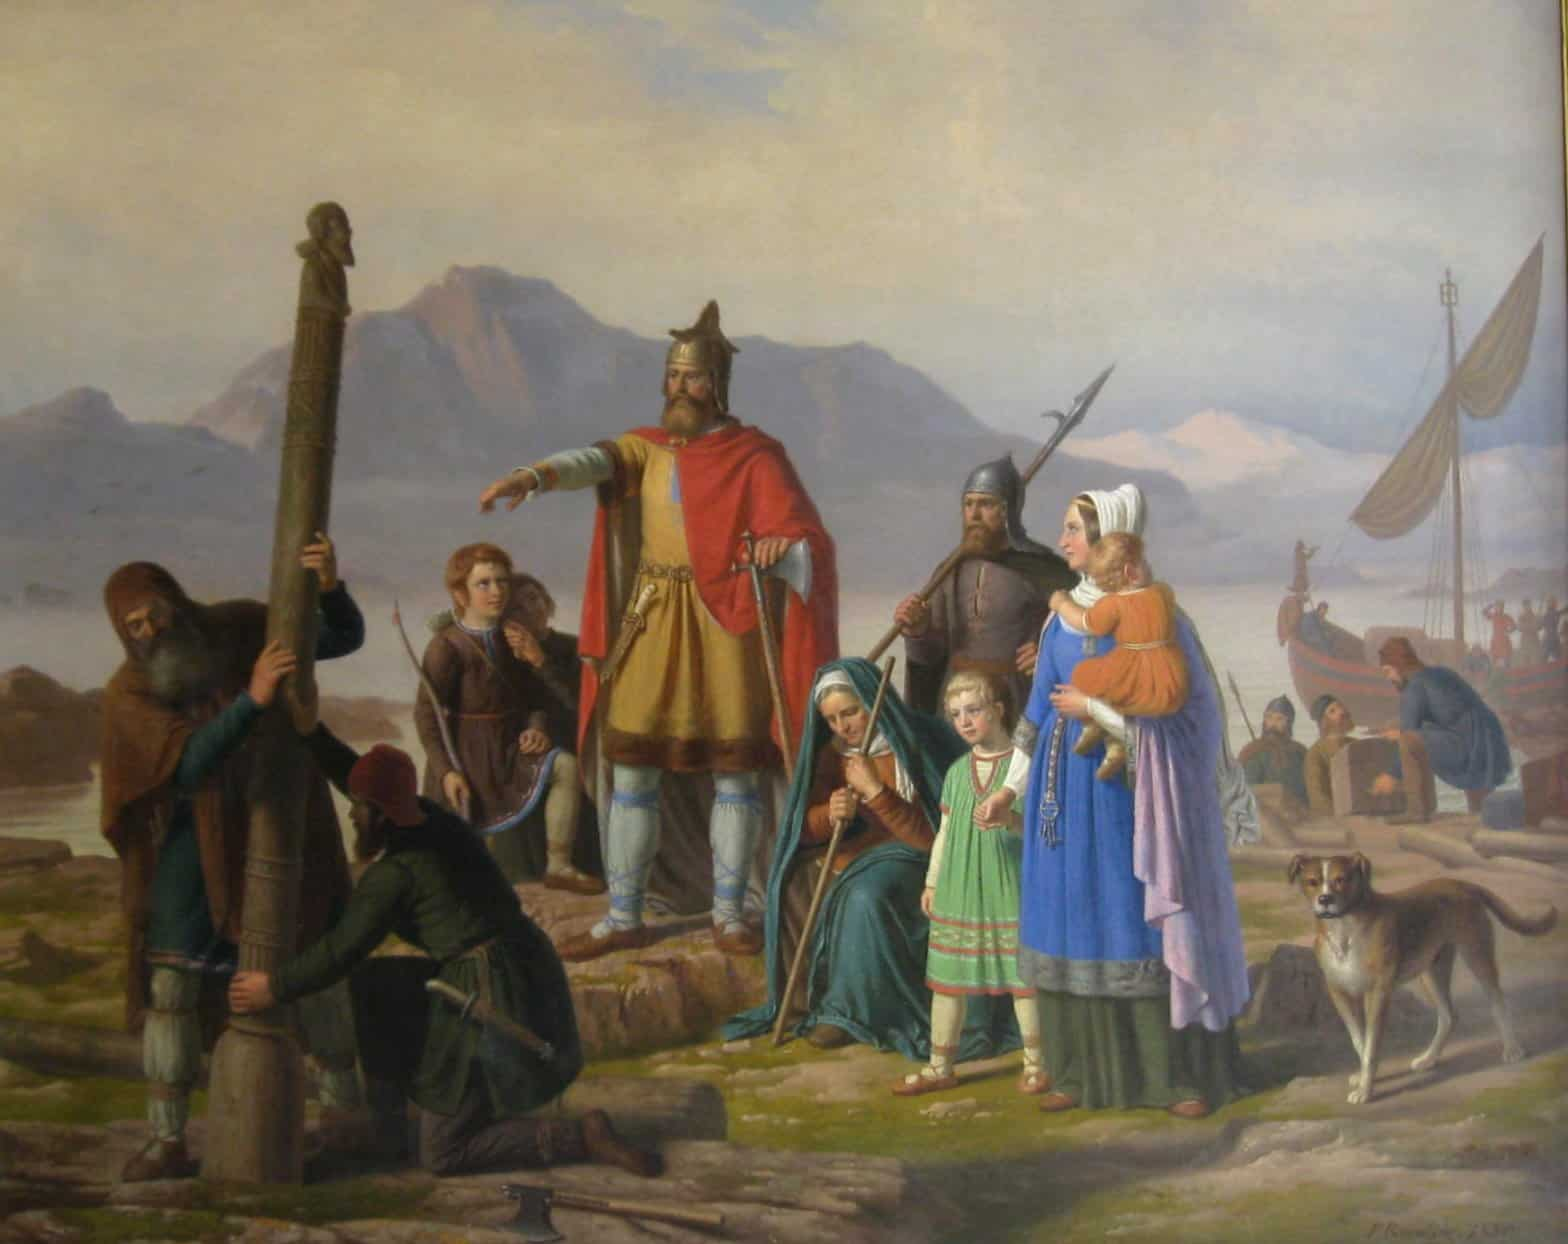 A depiction of Ingolfr arriving in Iceland with his pillars of wood